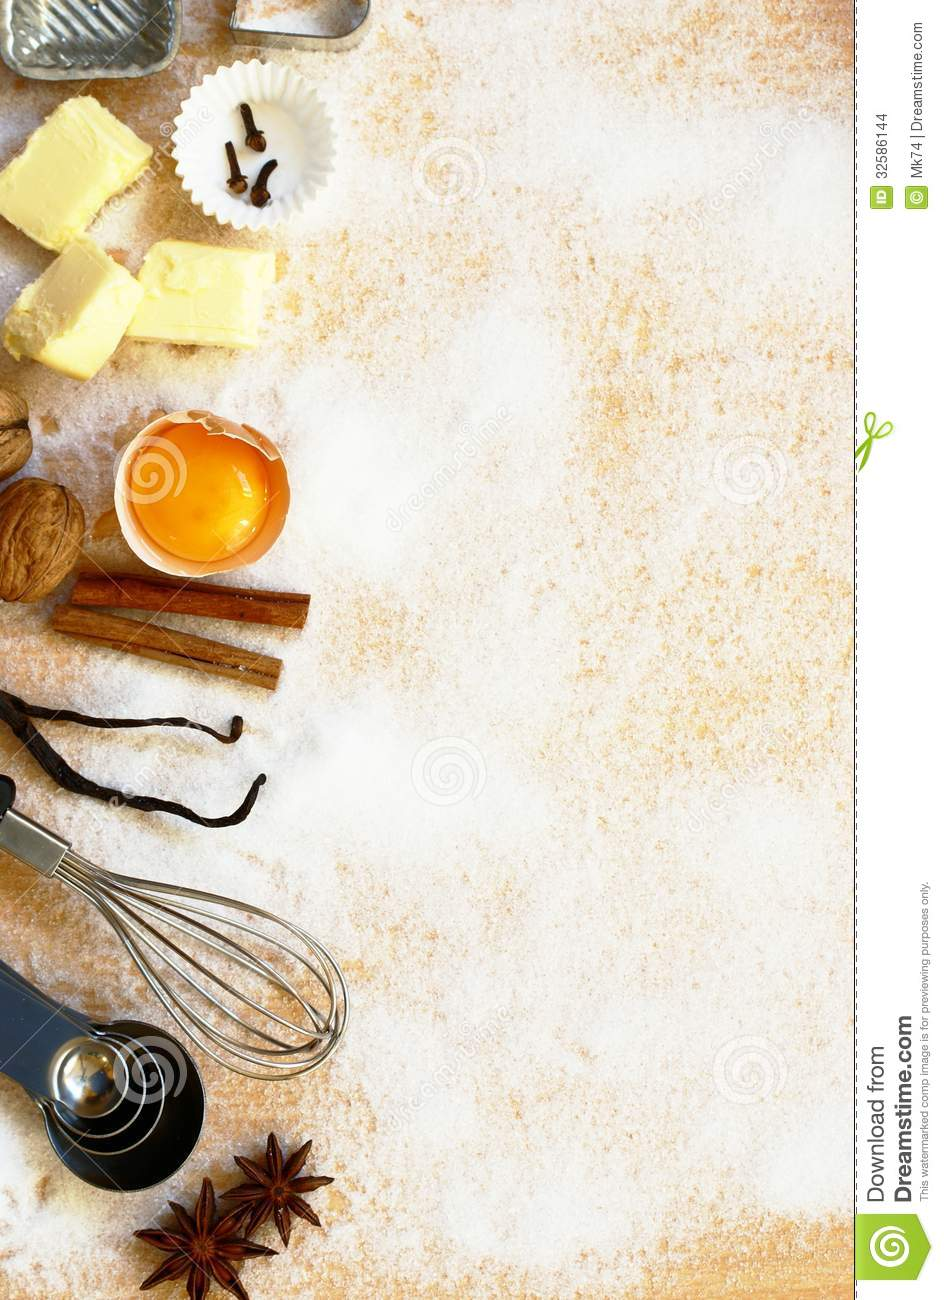 Wallpaper Food Cooking Grill Vegetables Peppers: Baking Background Stock Photo. Image Of Cutter, Butter